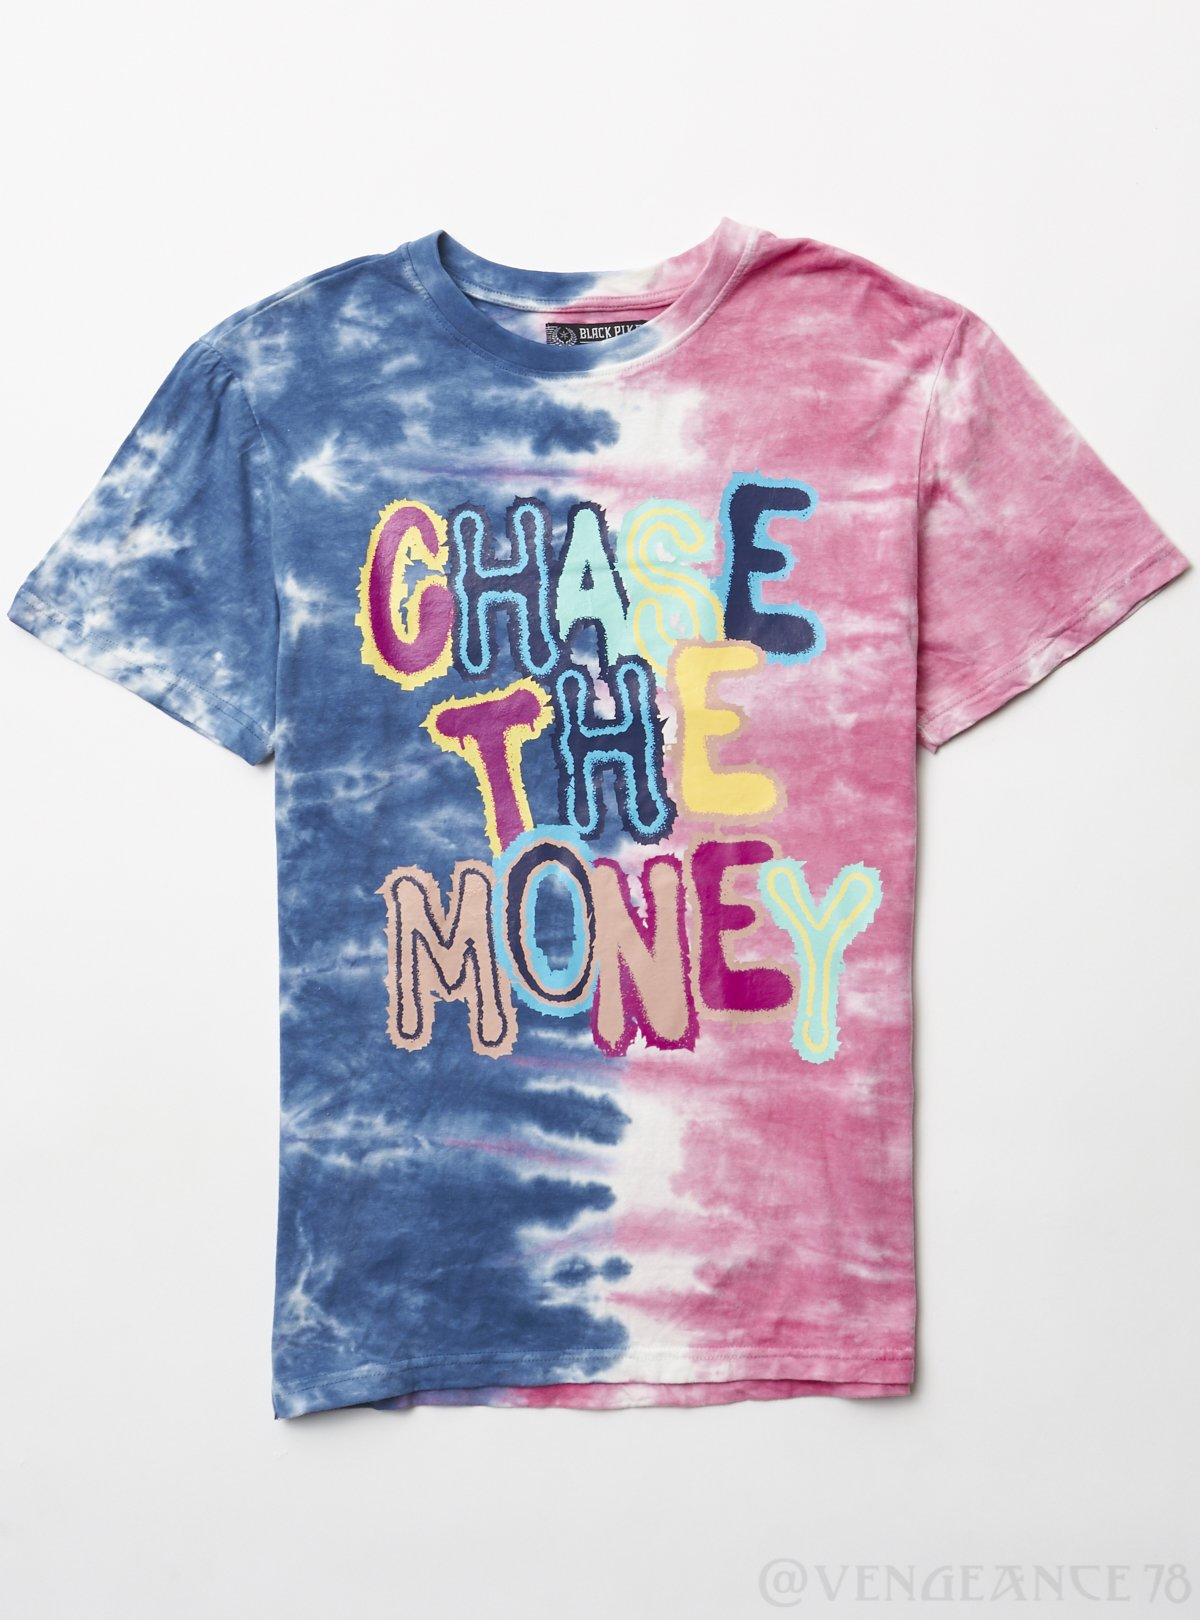 Black Pike T-Shirt - Chase the Money - Blue - BS0403